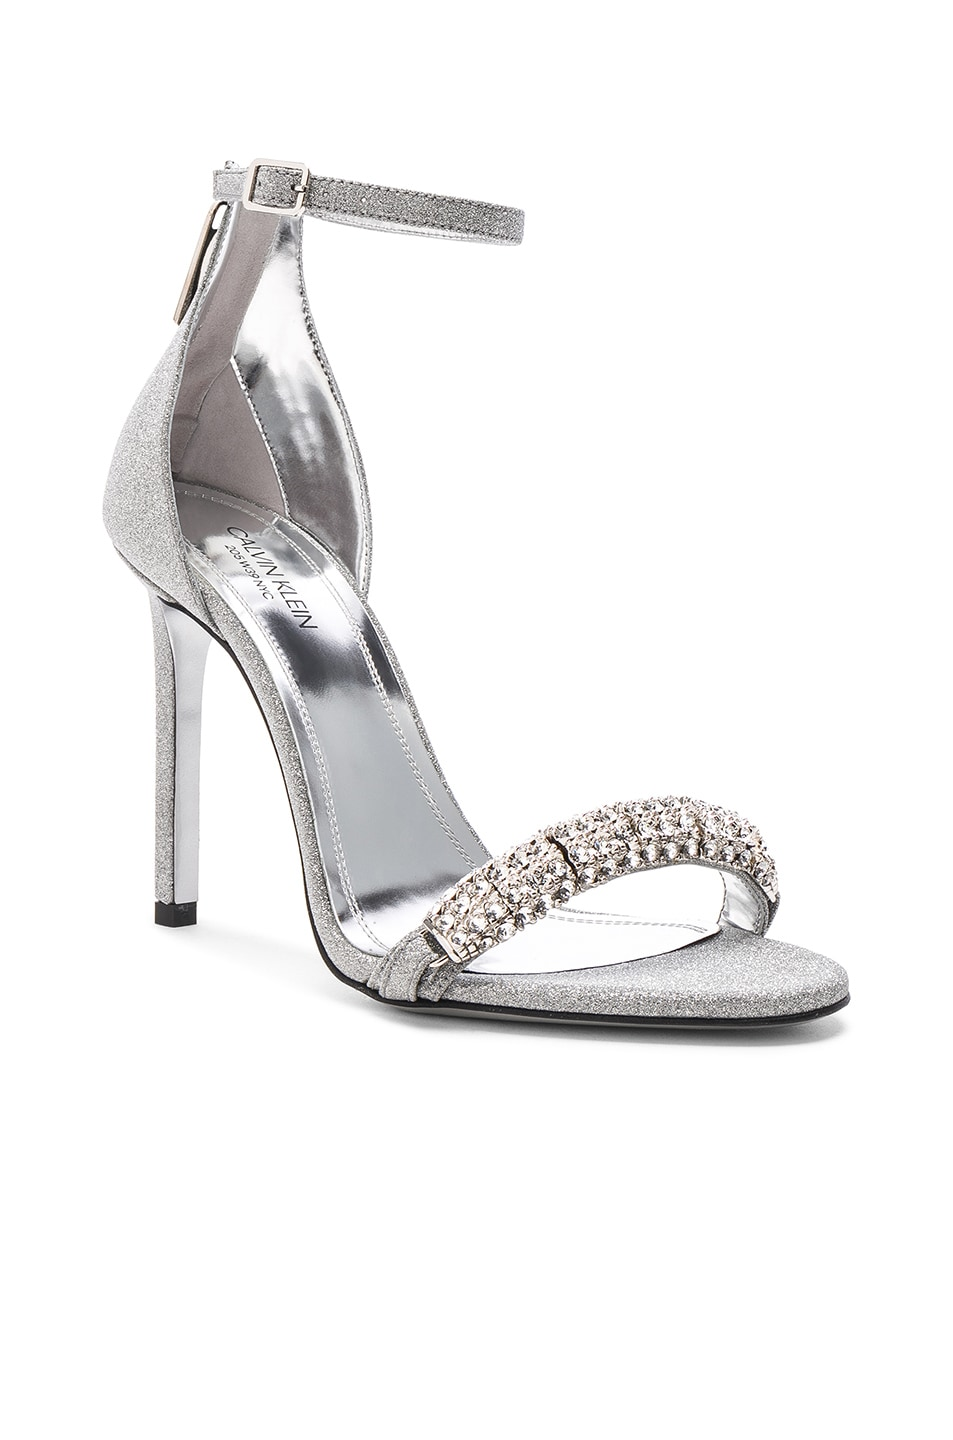 Image 3 of CALVIN KLEIN 205W39NYC Camelle Diamond & Swarovski Embellished Sandals in Silver